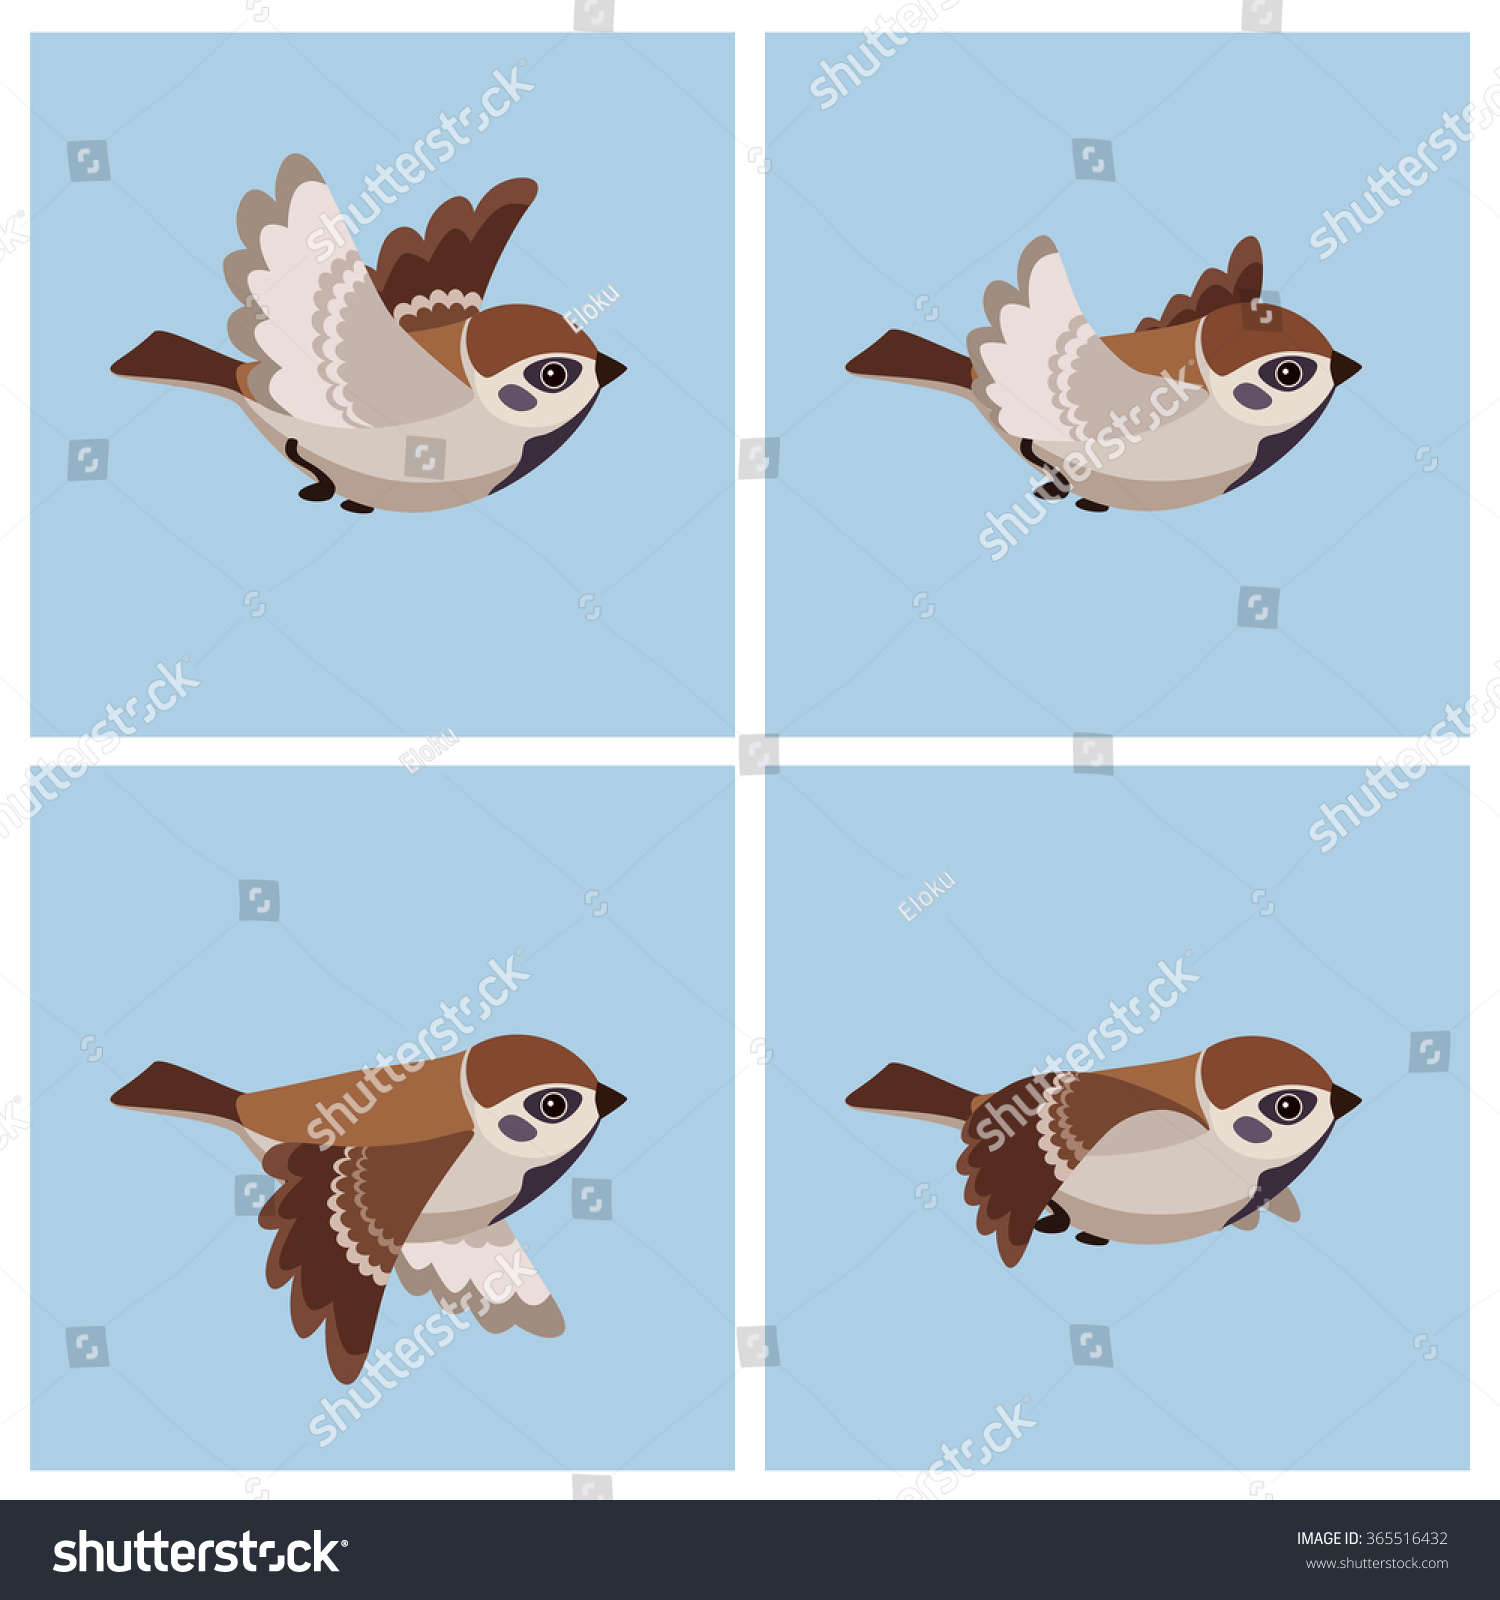 Flying sparrow animated - photo#4